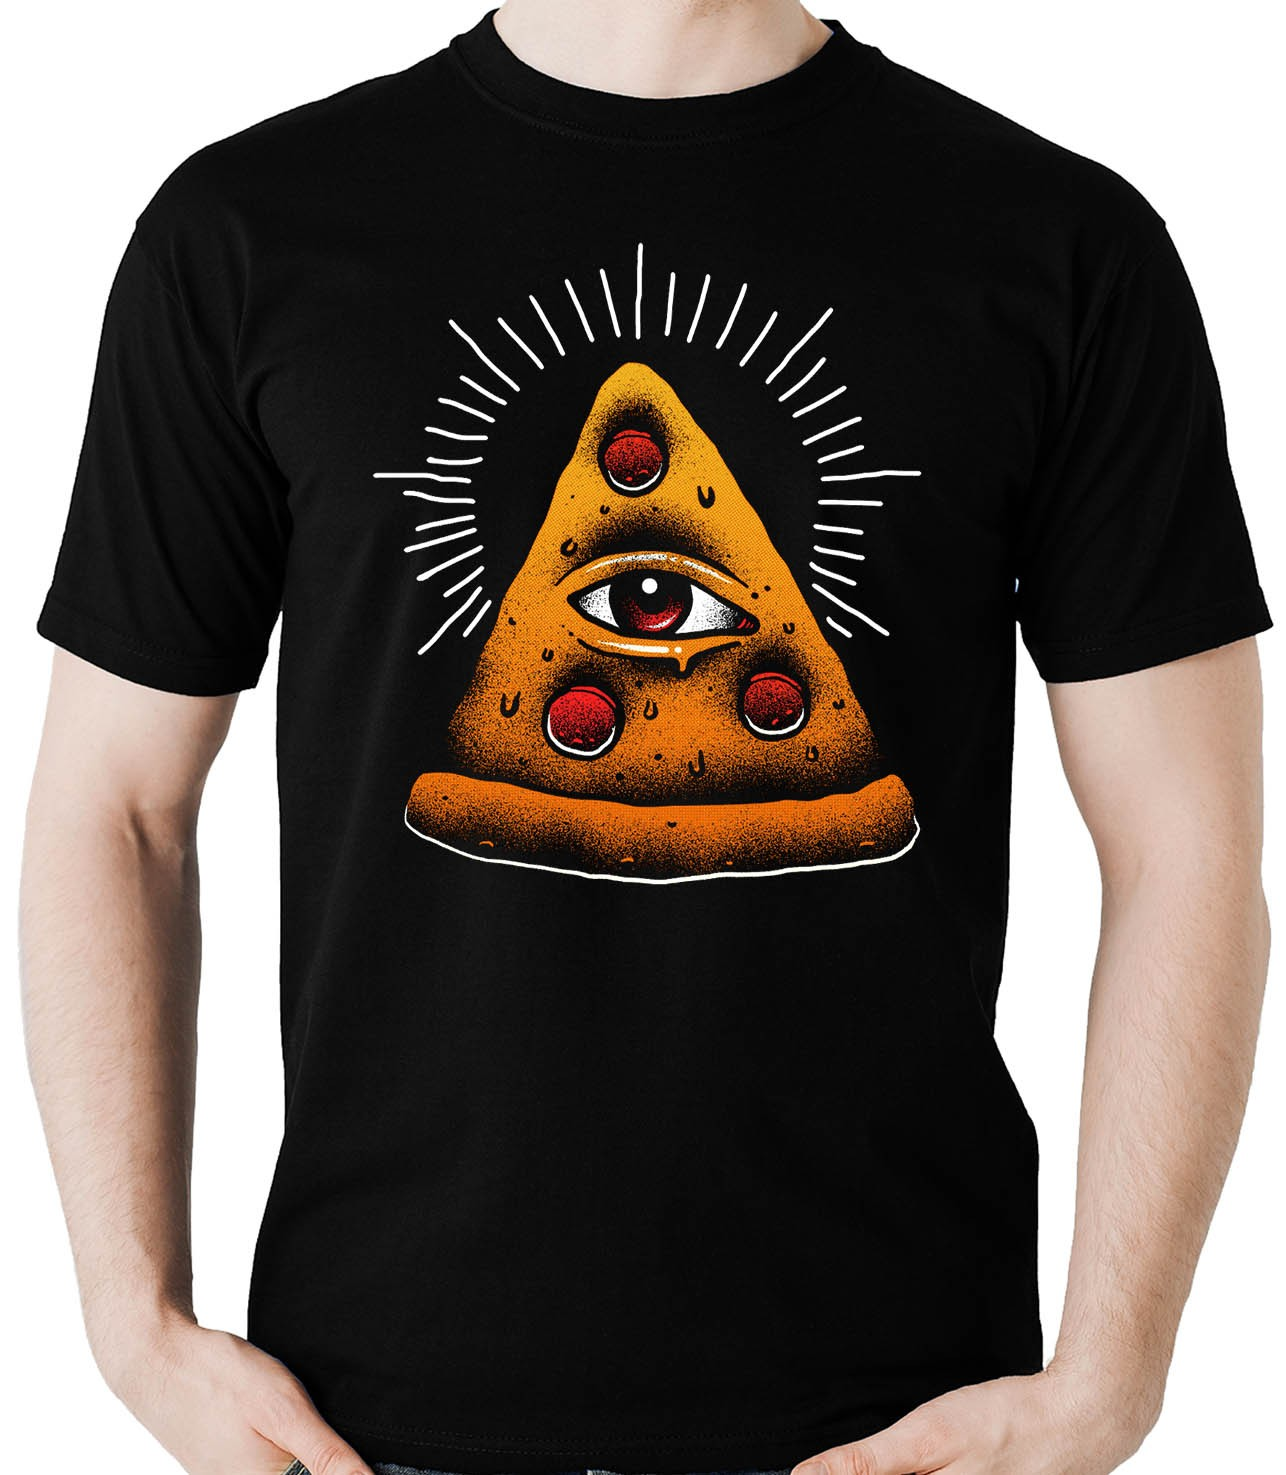 Camiseta Geek Pizza Illuminati Comida Lanche Fast Food Olho - Dragon Store